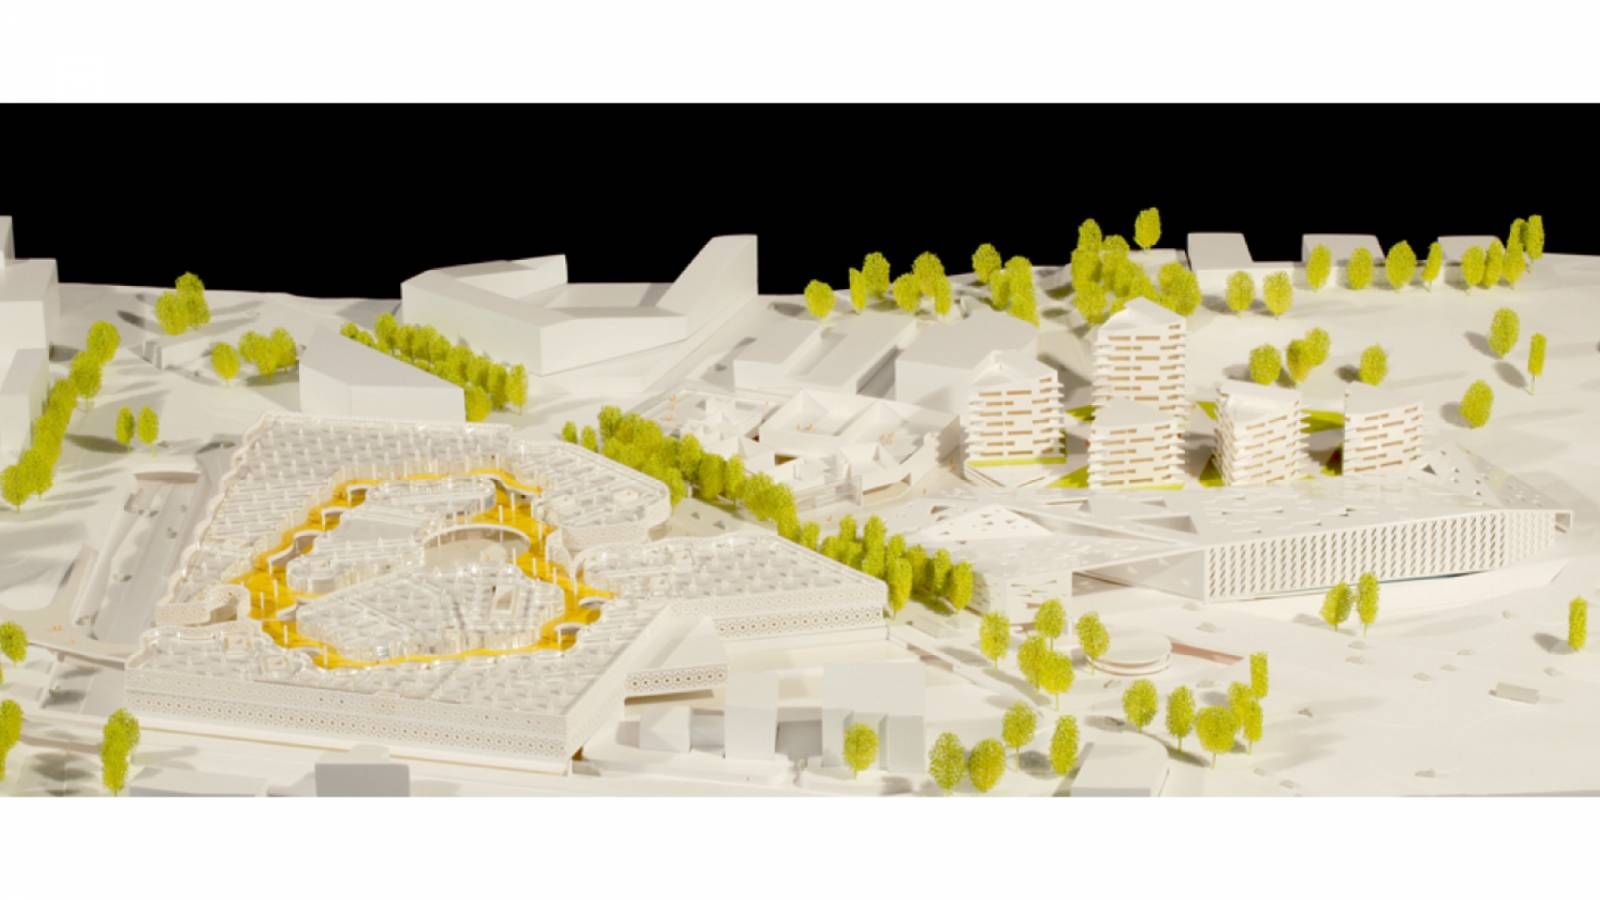 MODEL CULTURE - Økern Centre - SPOL Architects